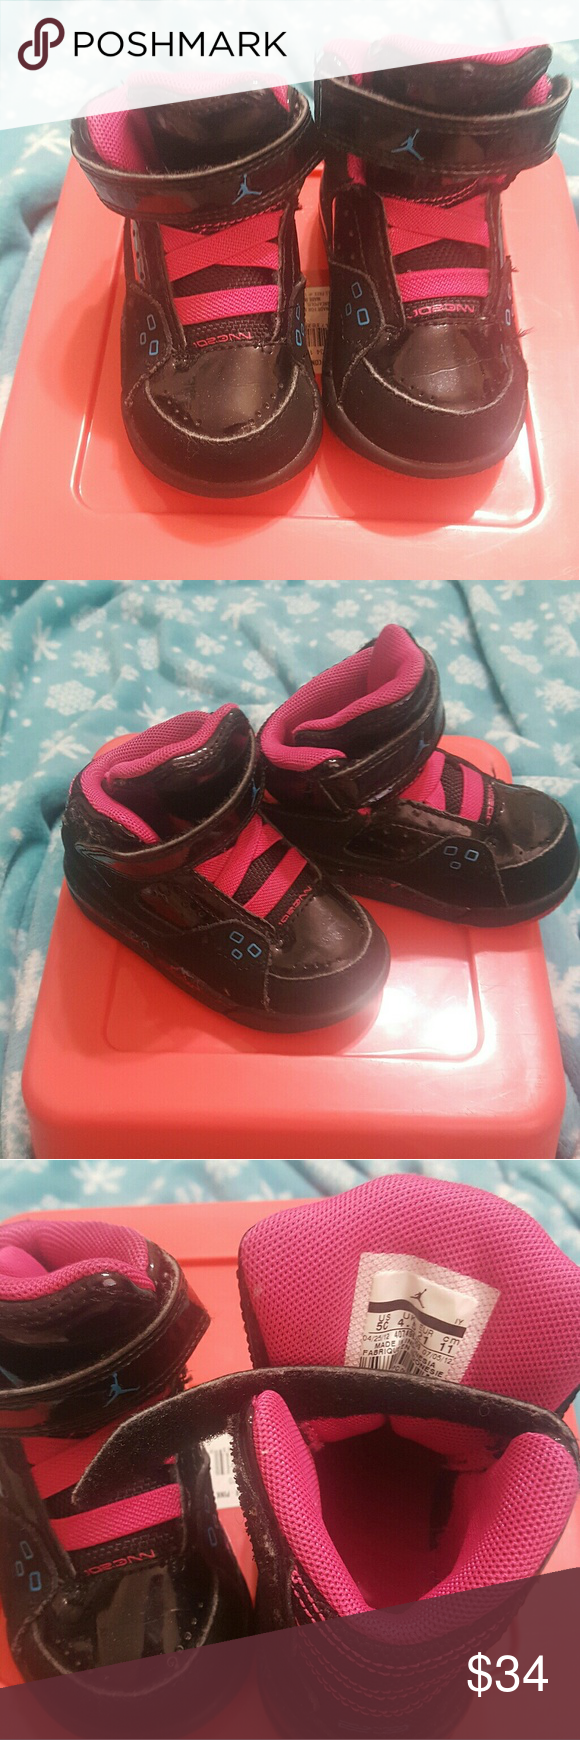 brand new c67bf ee7be Super cute pink and black Jordans!! Adorable toddler girl ...